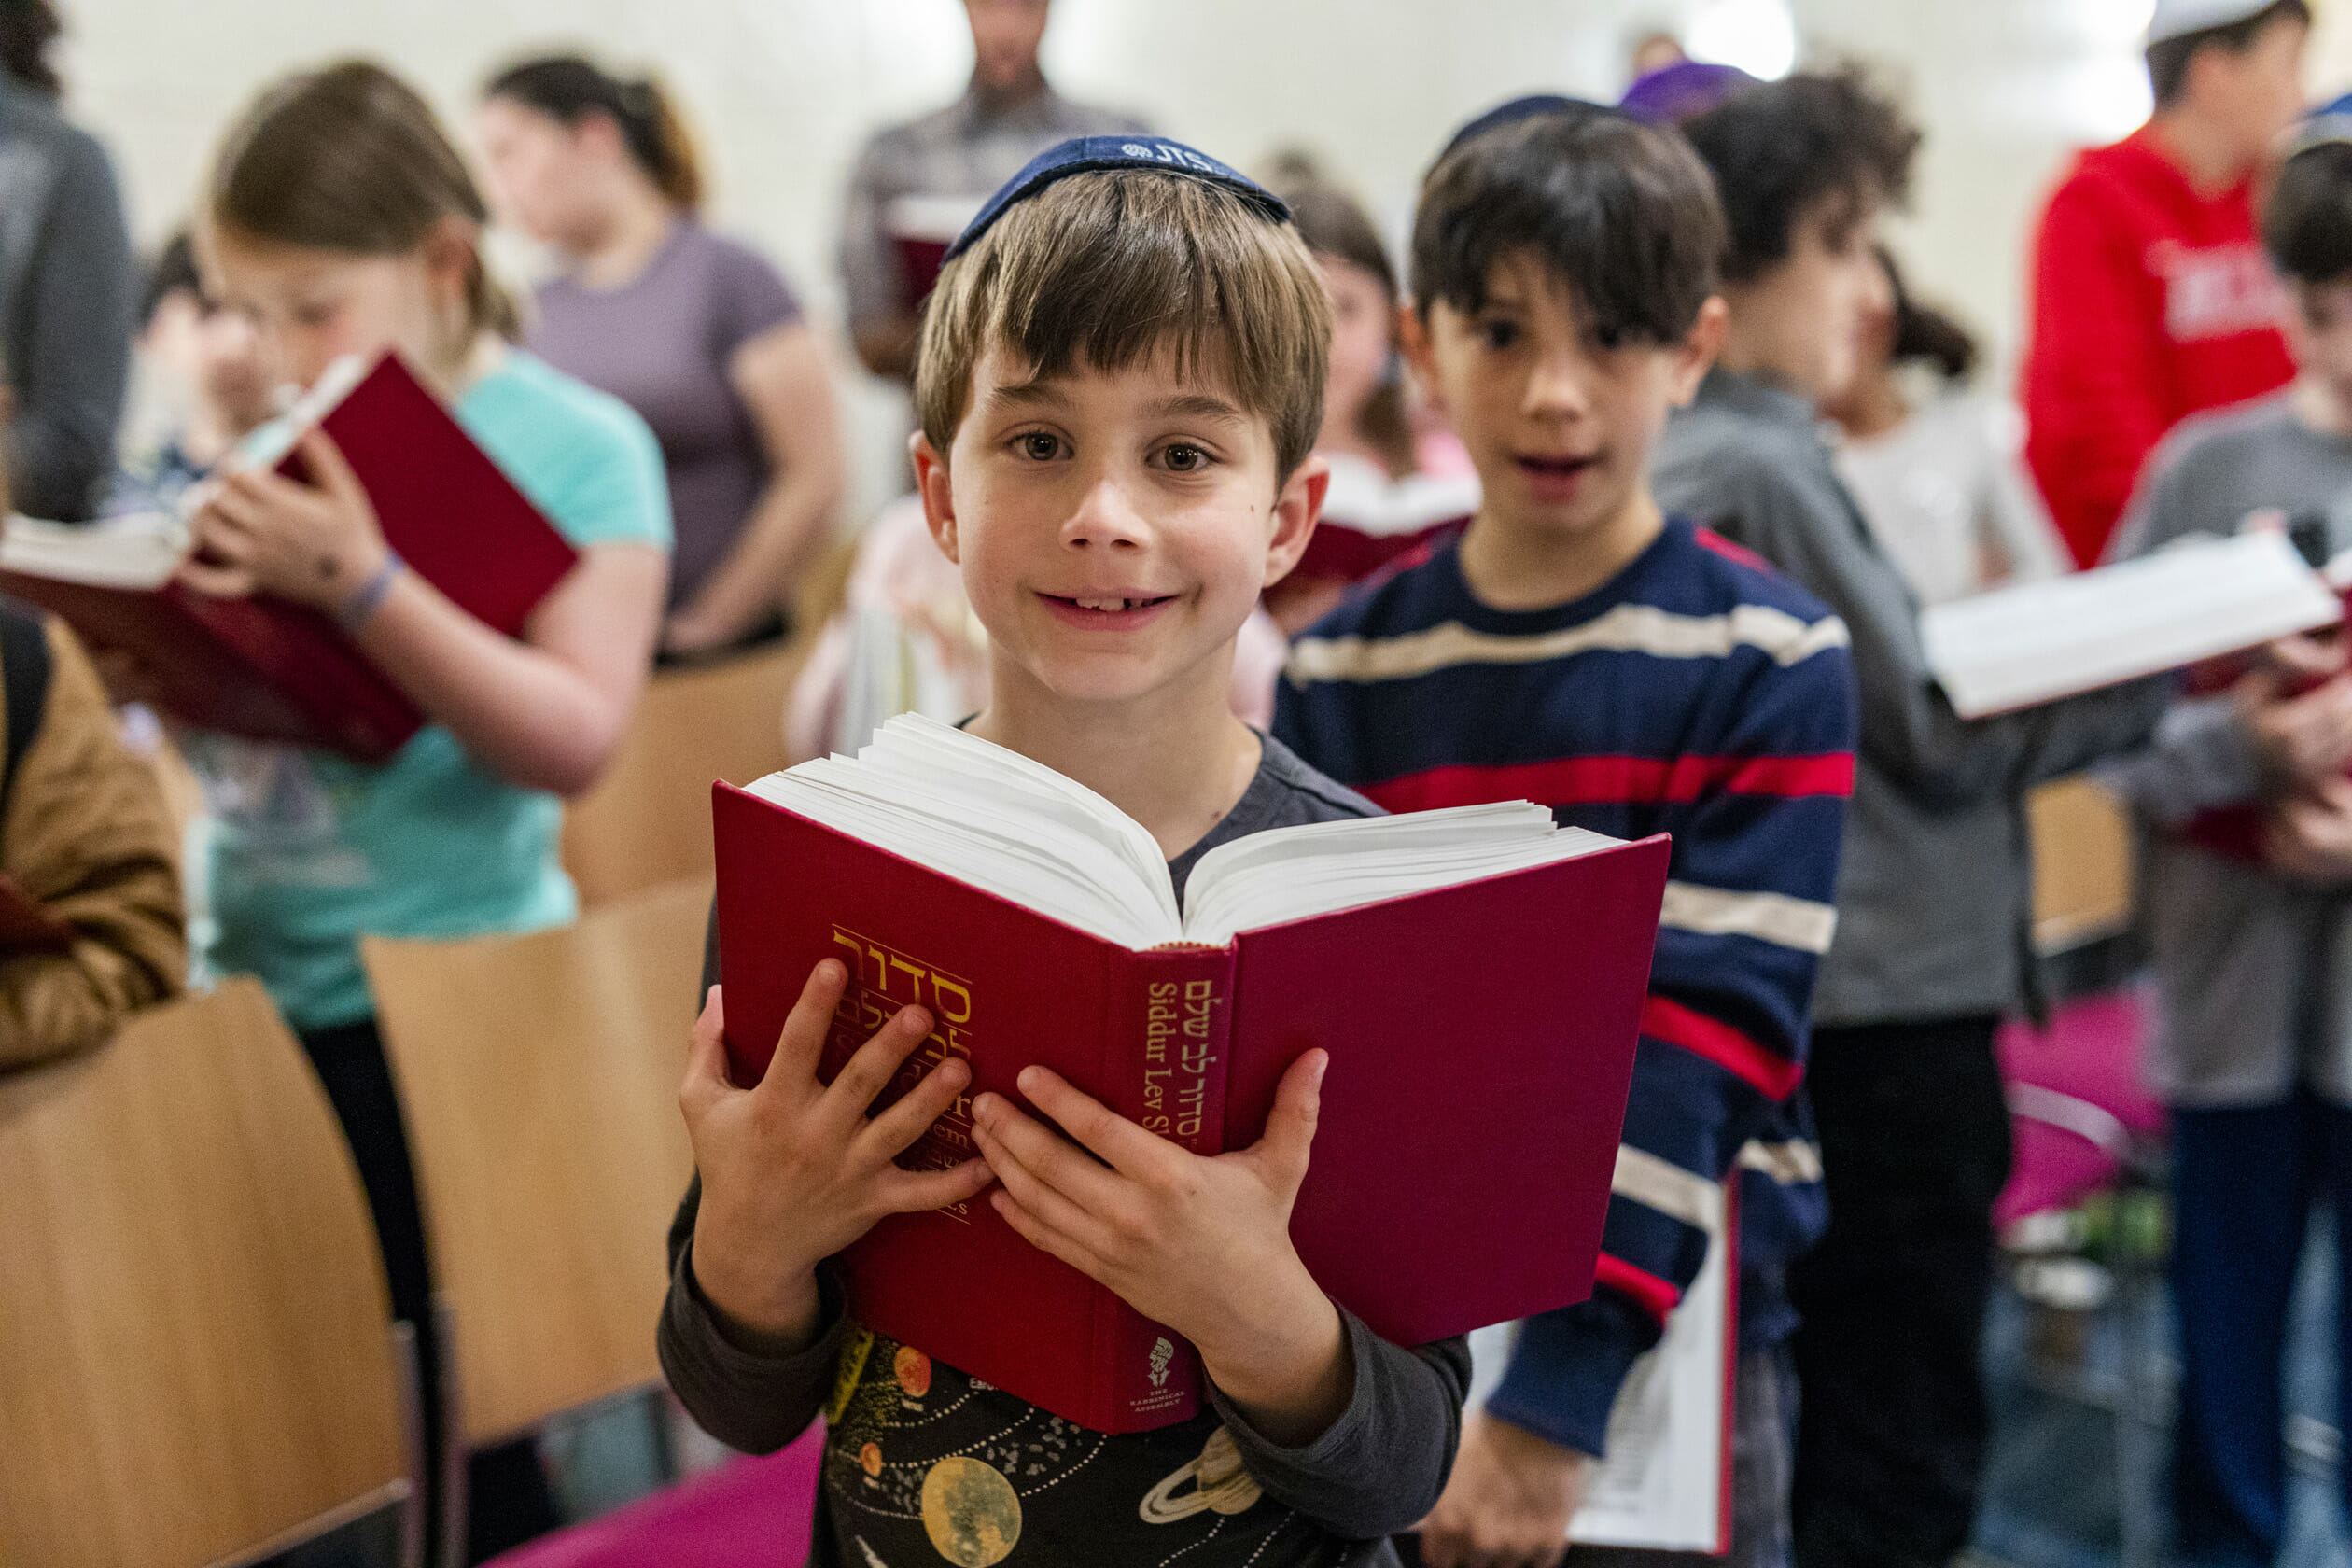 boys reading siddur